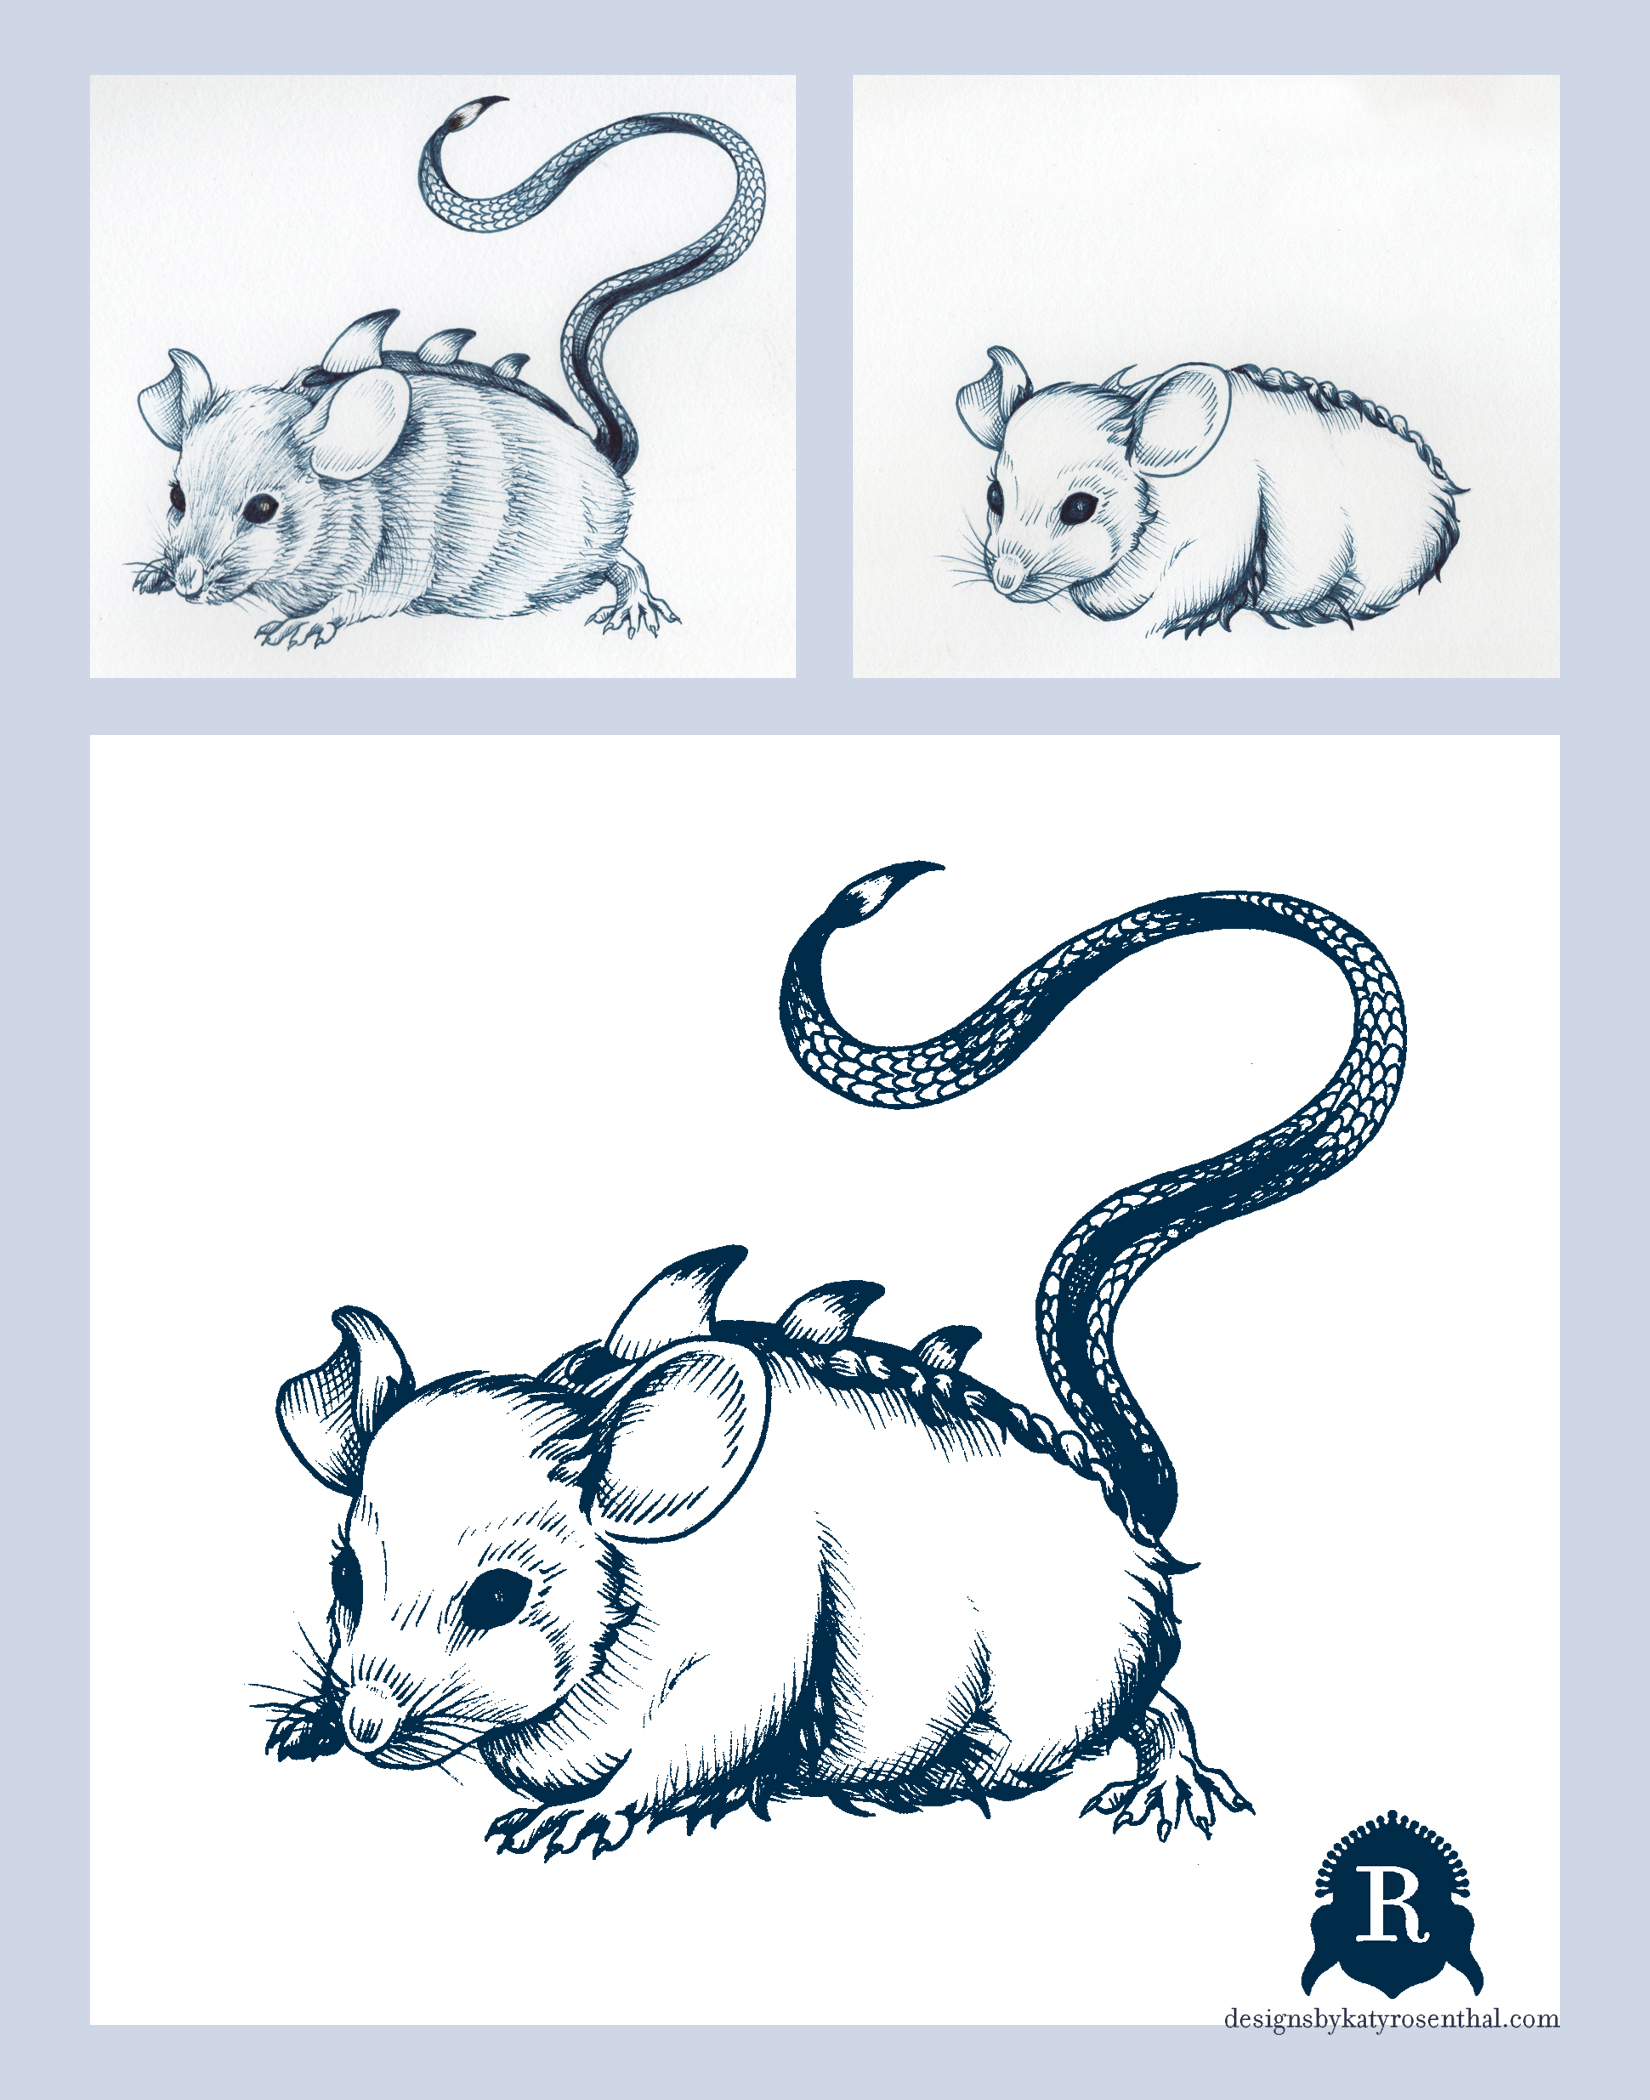 """The process for creating """"Tionae,"""" my invented take on a mythological mouse with the horn-ridged back and scaly tail familiar to the lore of dragons. In the first drawing, I was happy with the general shape and the invented, dragon-like elements, but not with the rendering of the fur. I traced over the original and redrew the aspects I felt needed changing,splicing the two drawings together on Photoshop to achieve the final version shown on the bottom."""